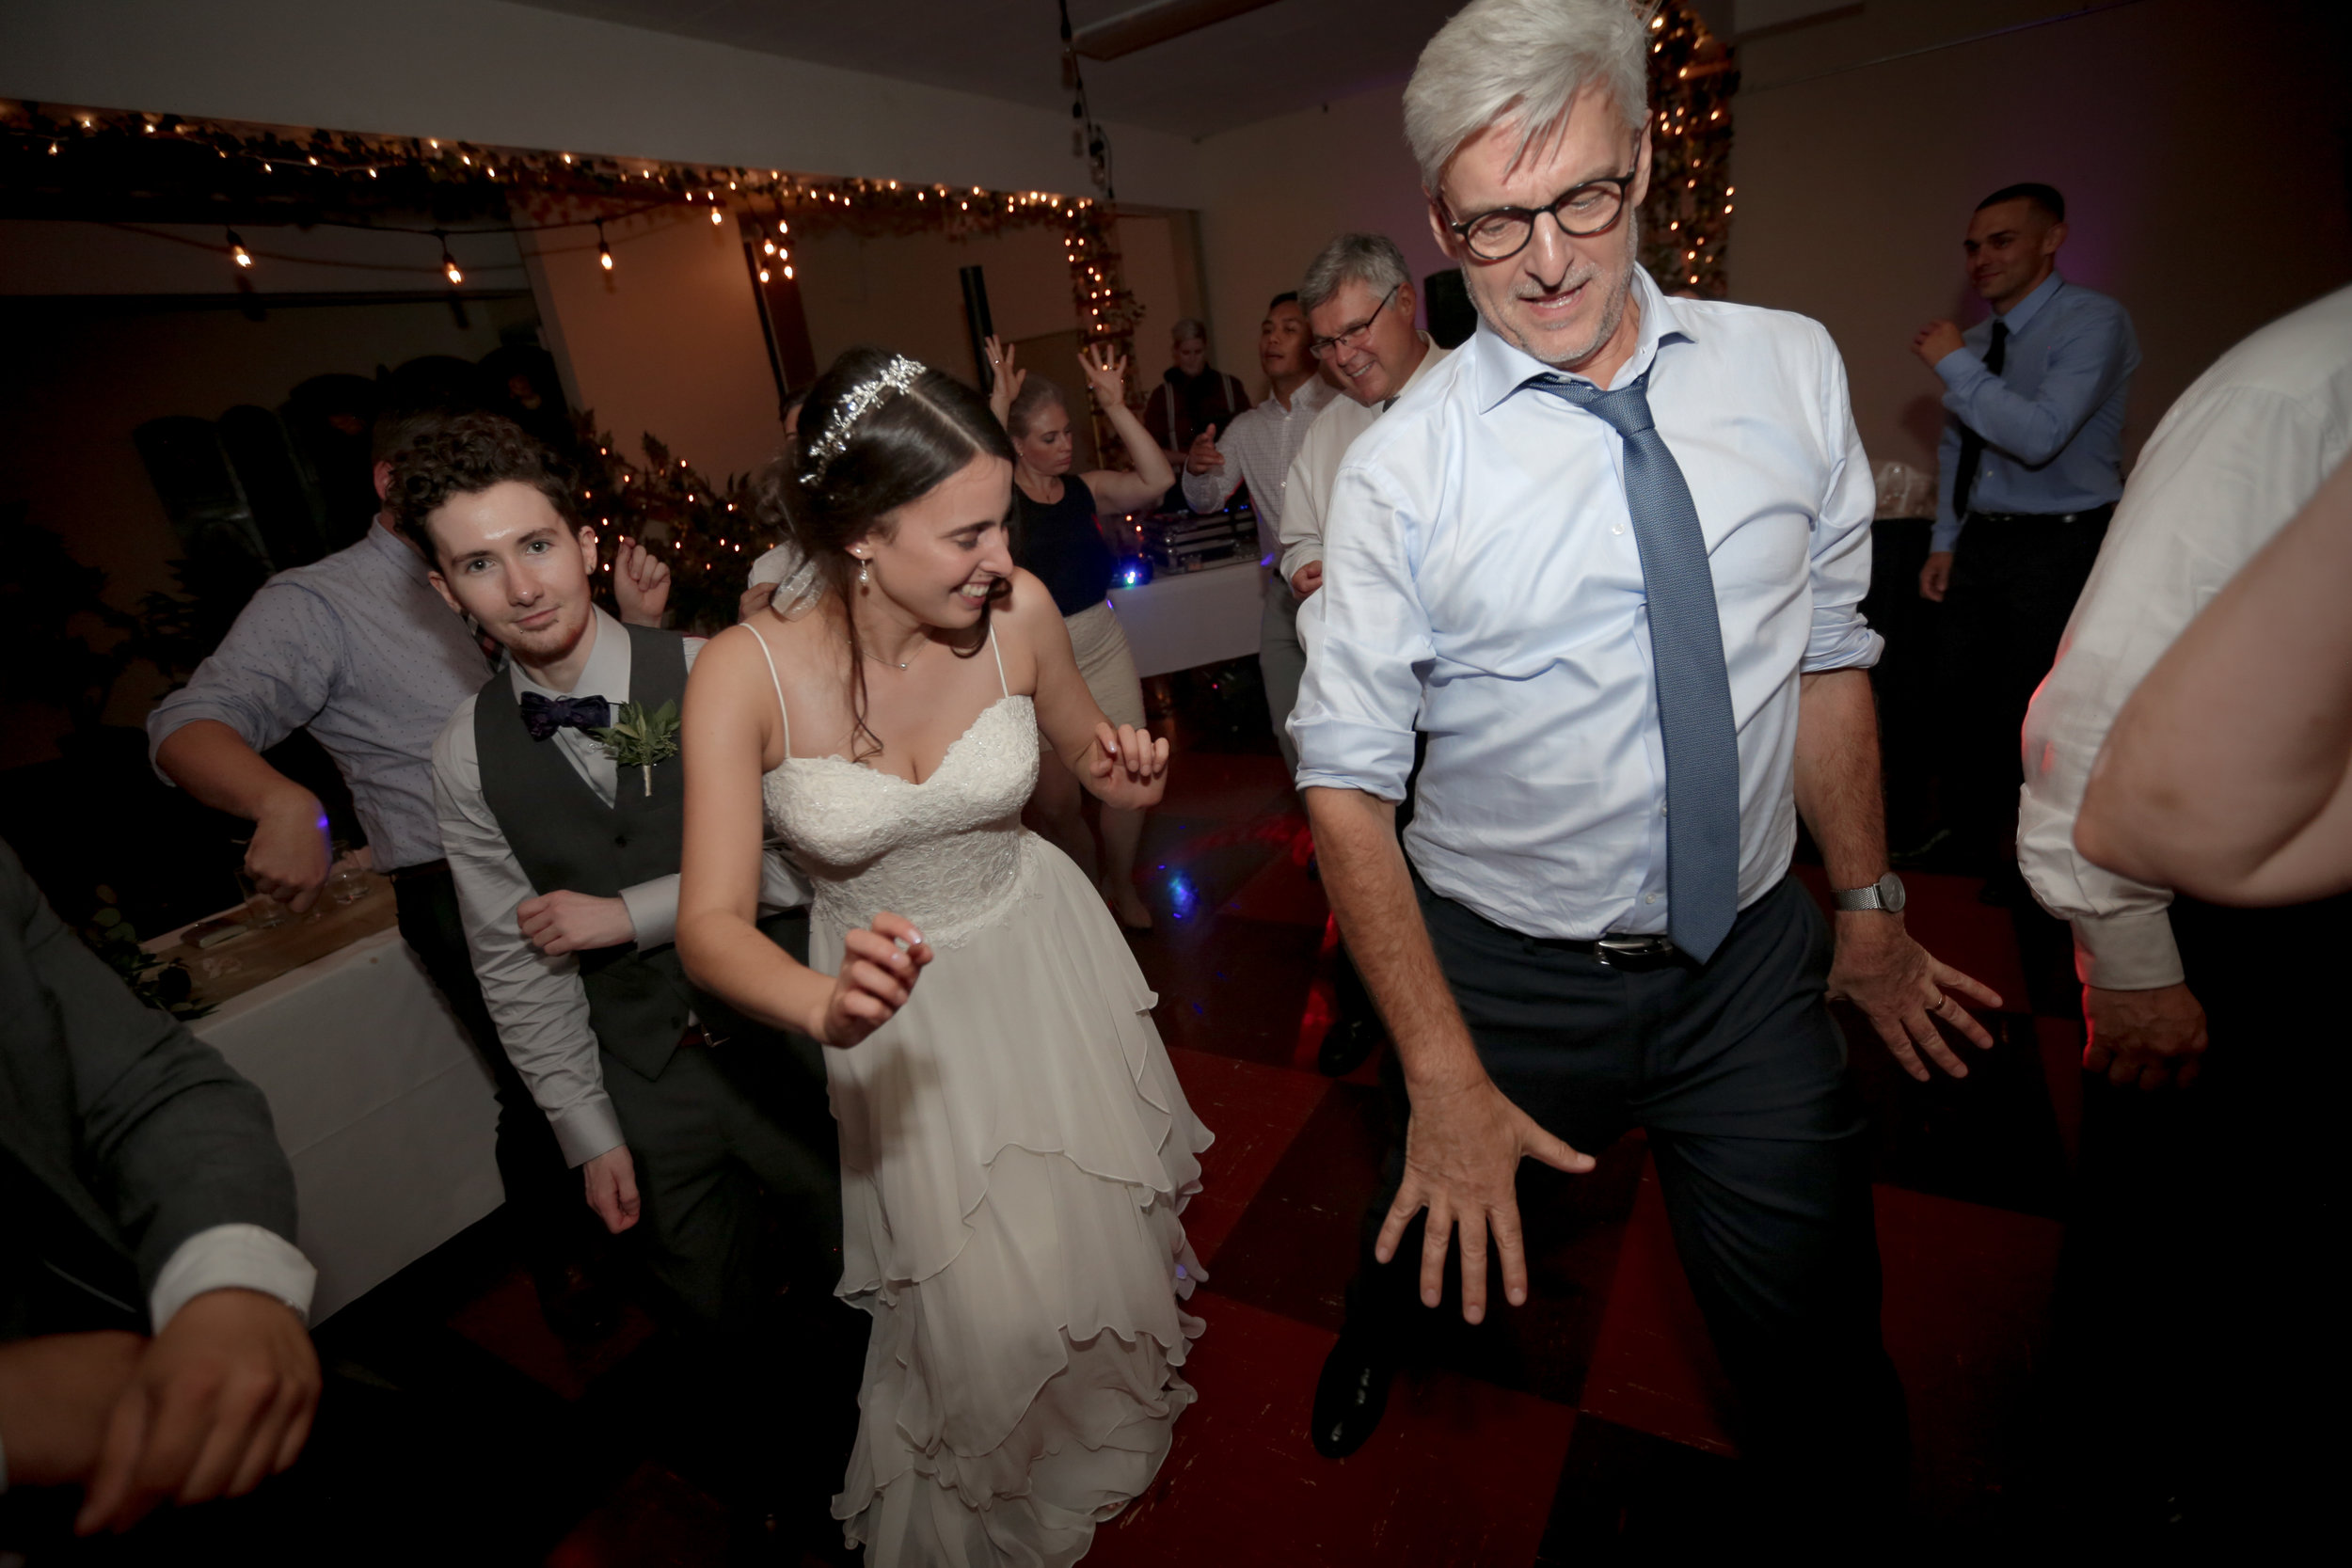 Emily&AaronWedding (560 of 572).jpg